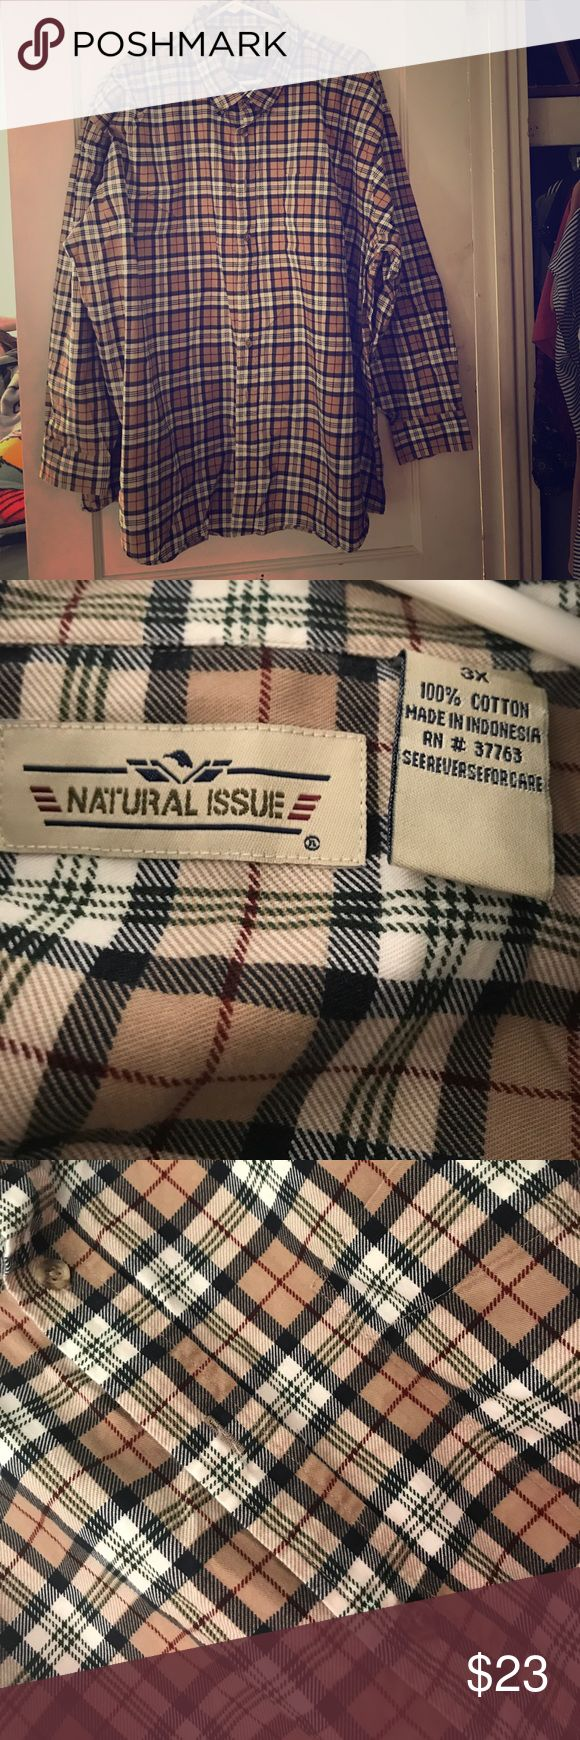 Men's plaid shirt Button up plaid shirt, gently used, sleeves button up as well Shirts Casual Button Down Shirts